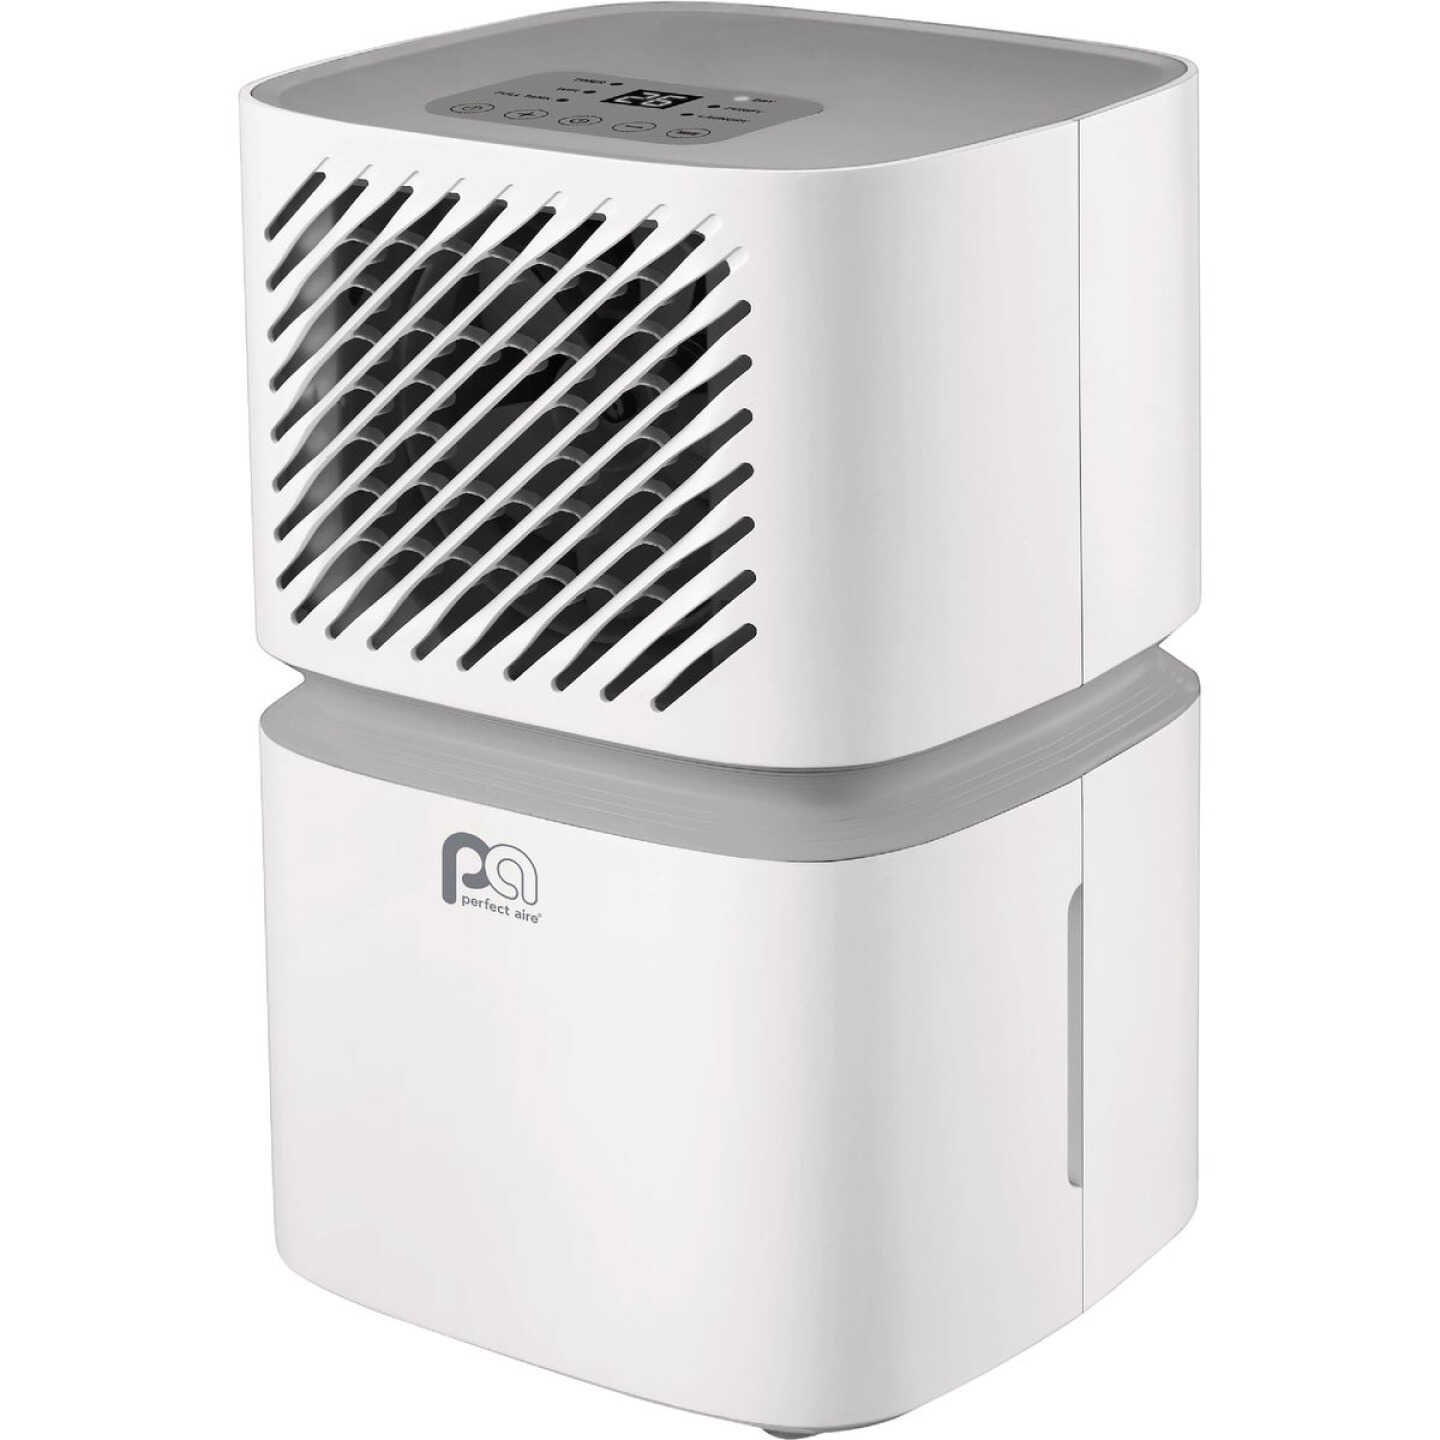 Perfect Aire 8 Pt./Day 101 Sq. Ft. 3-Speed Dehumidifier Image 1